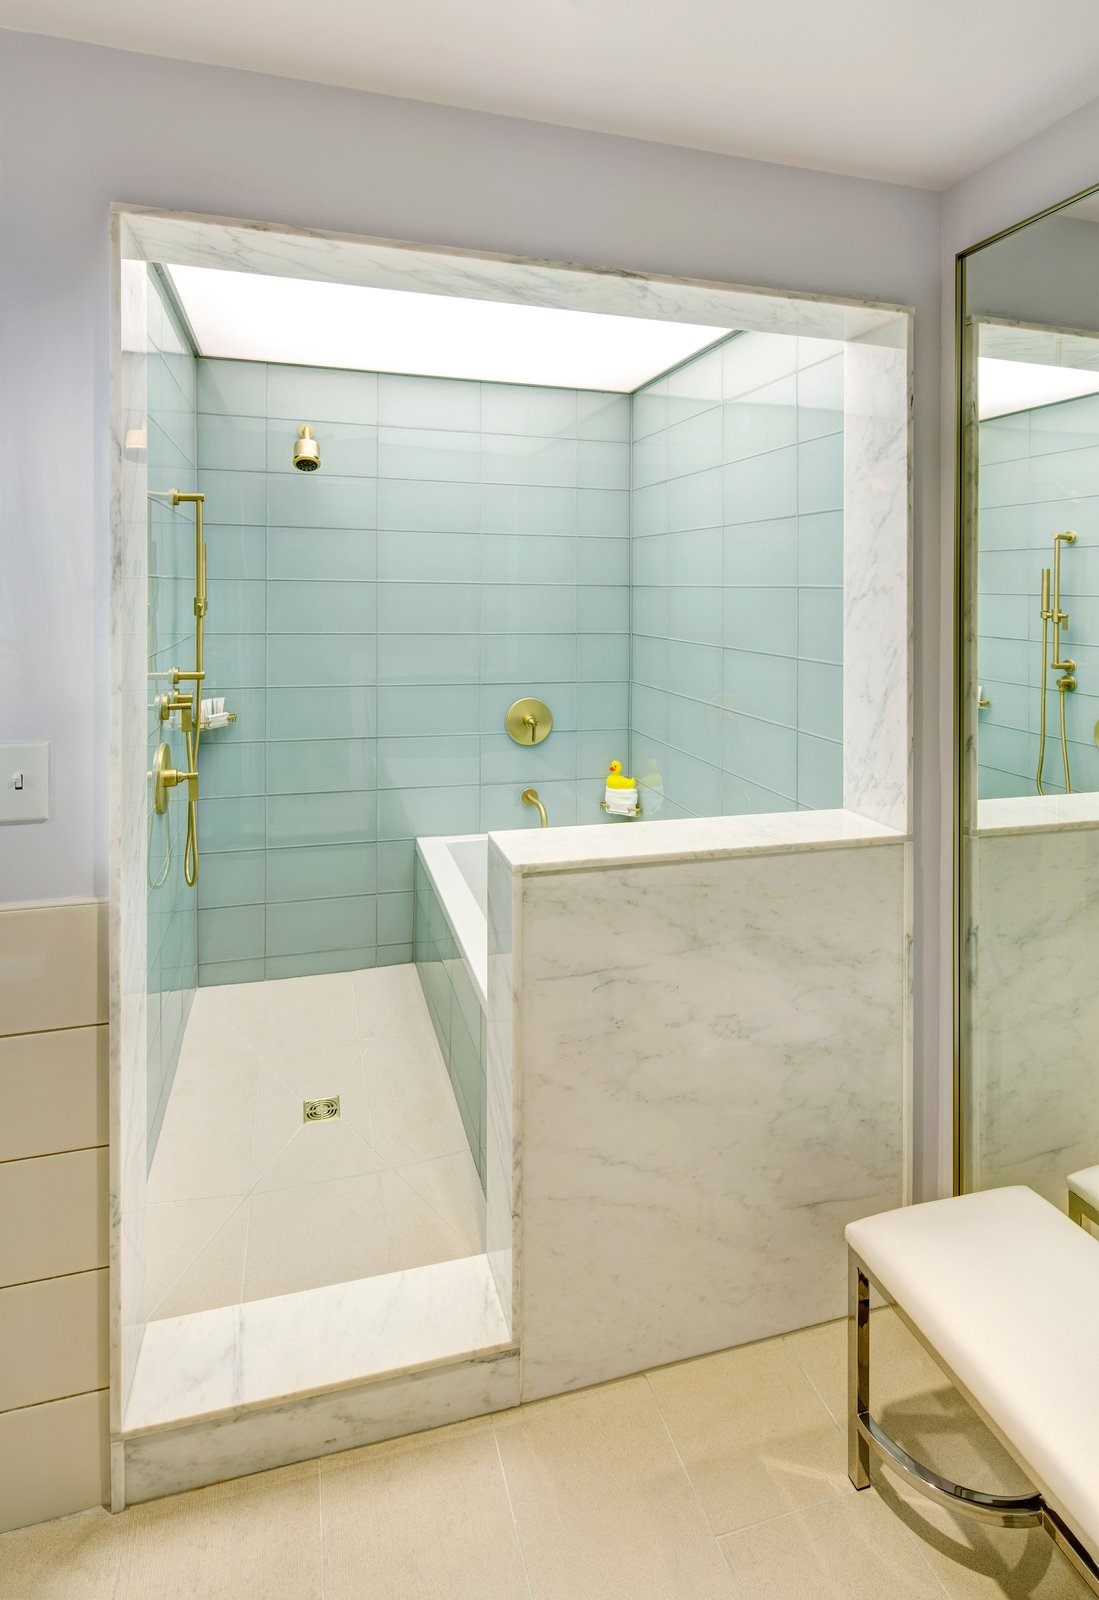 Charming Large Scale Glass Tile Lines The Shower Enclosure In The Suite Bathrooms;  Marble Surrounds